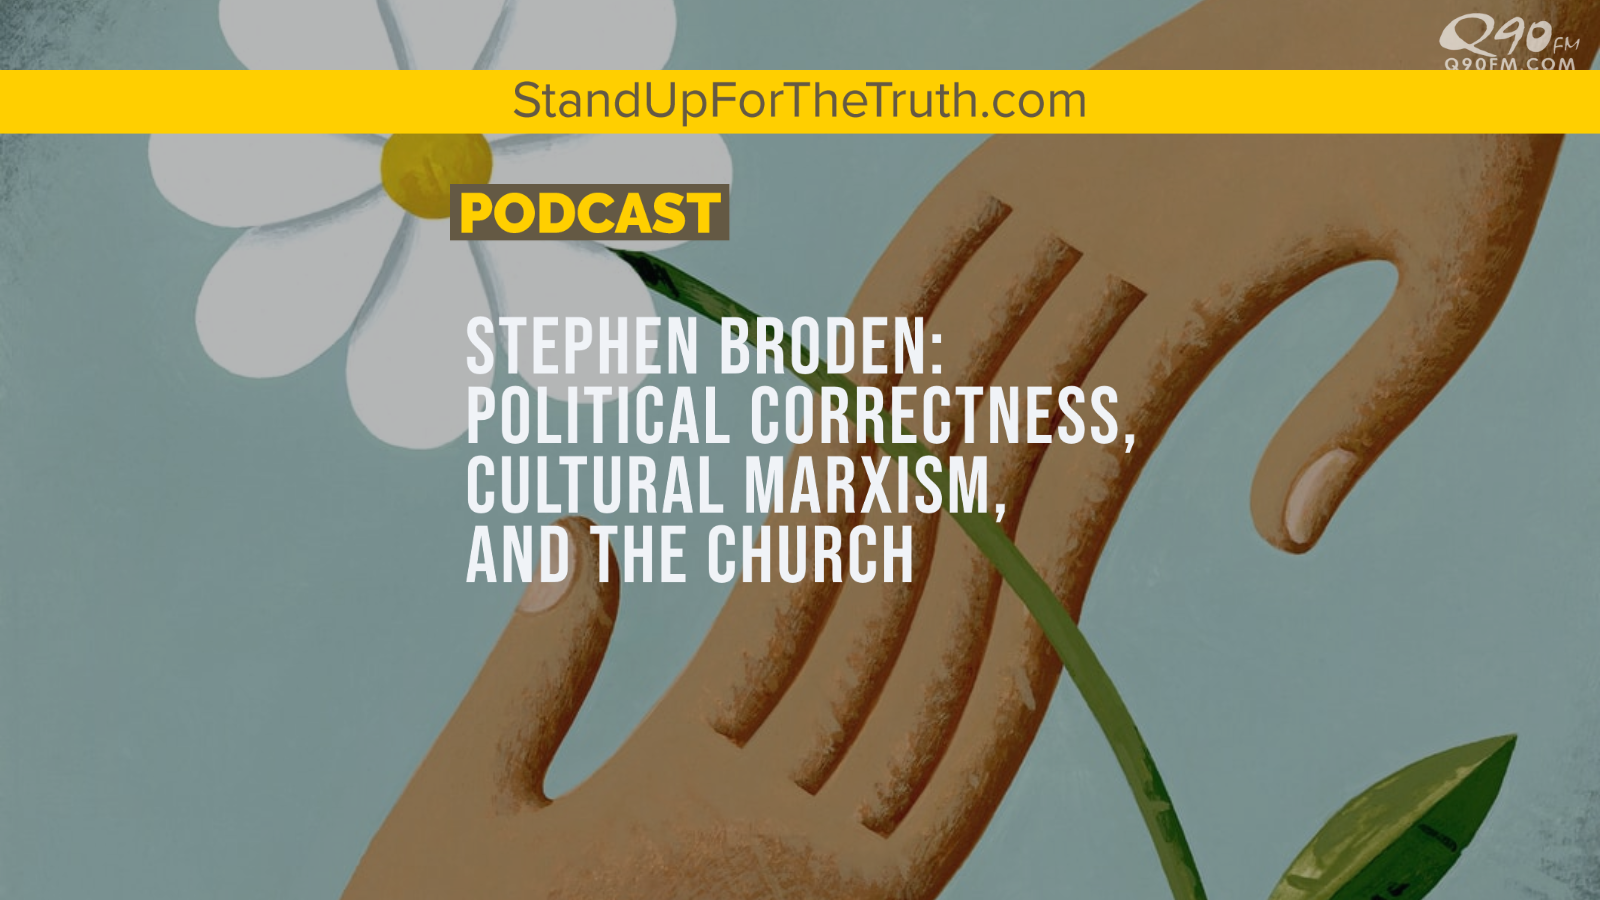 Stephen Broden: Political Correctness, Cultural Marxism, and the Church